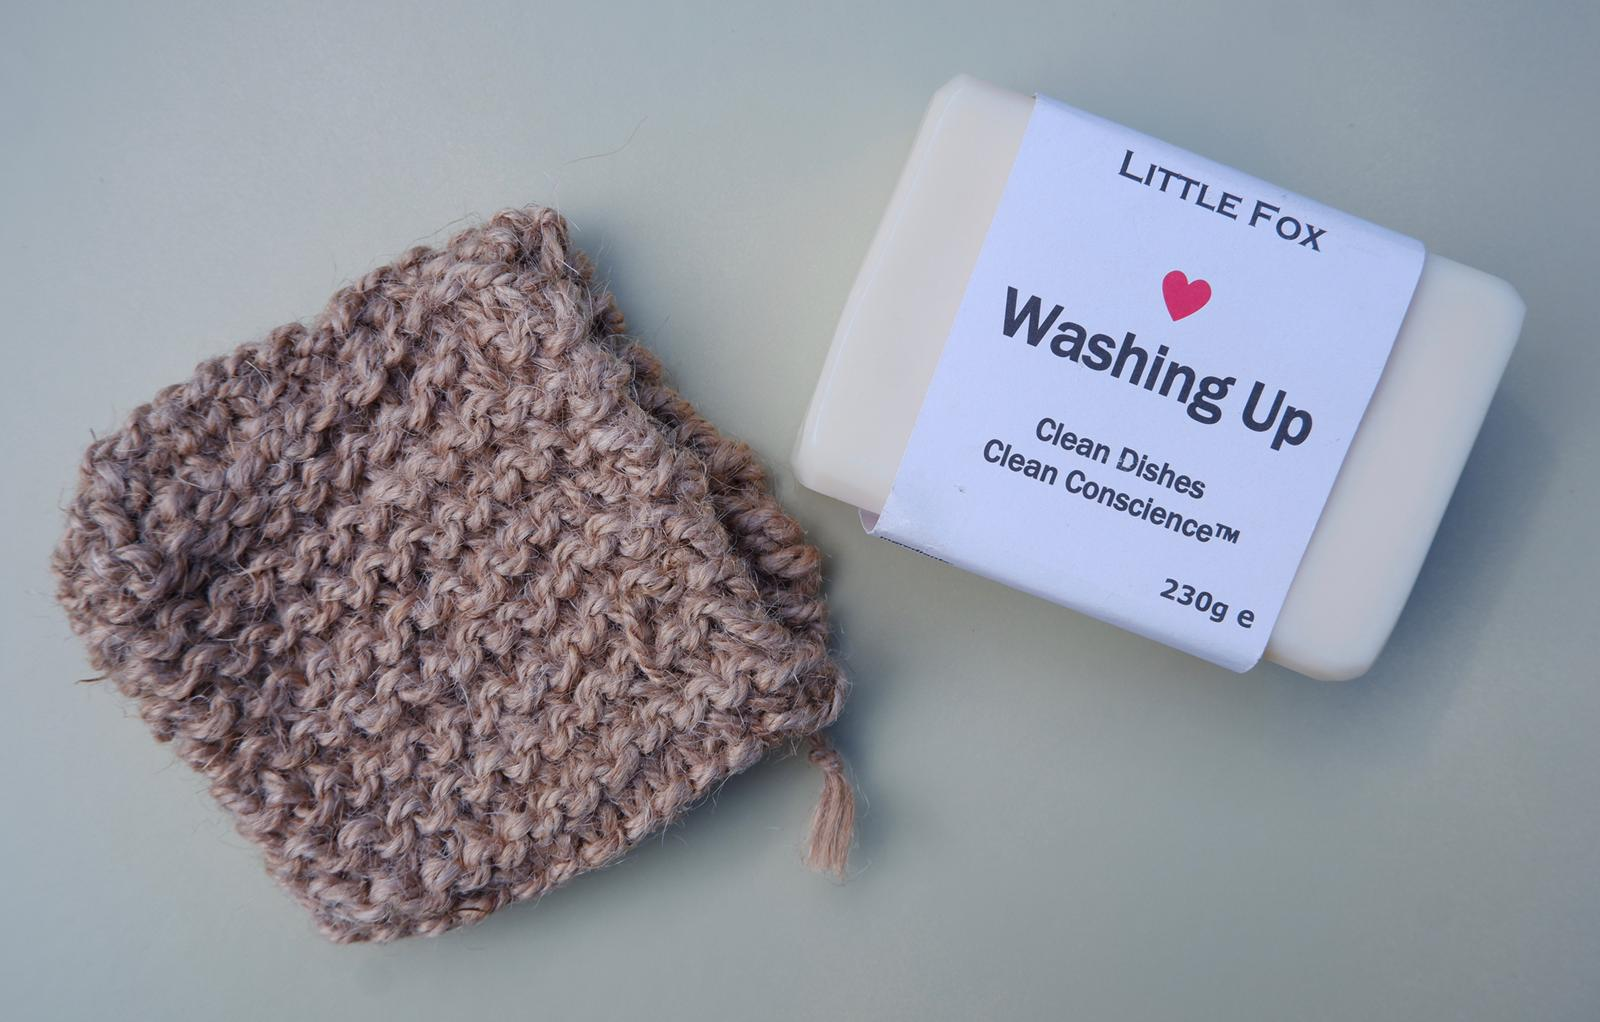 Jefferson Crafts Jute Soap Saver Bag with Washing Up Soap